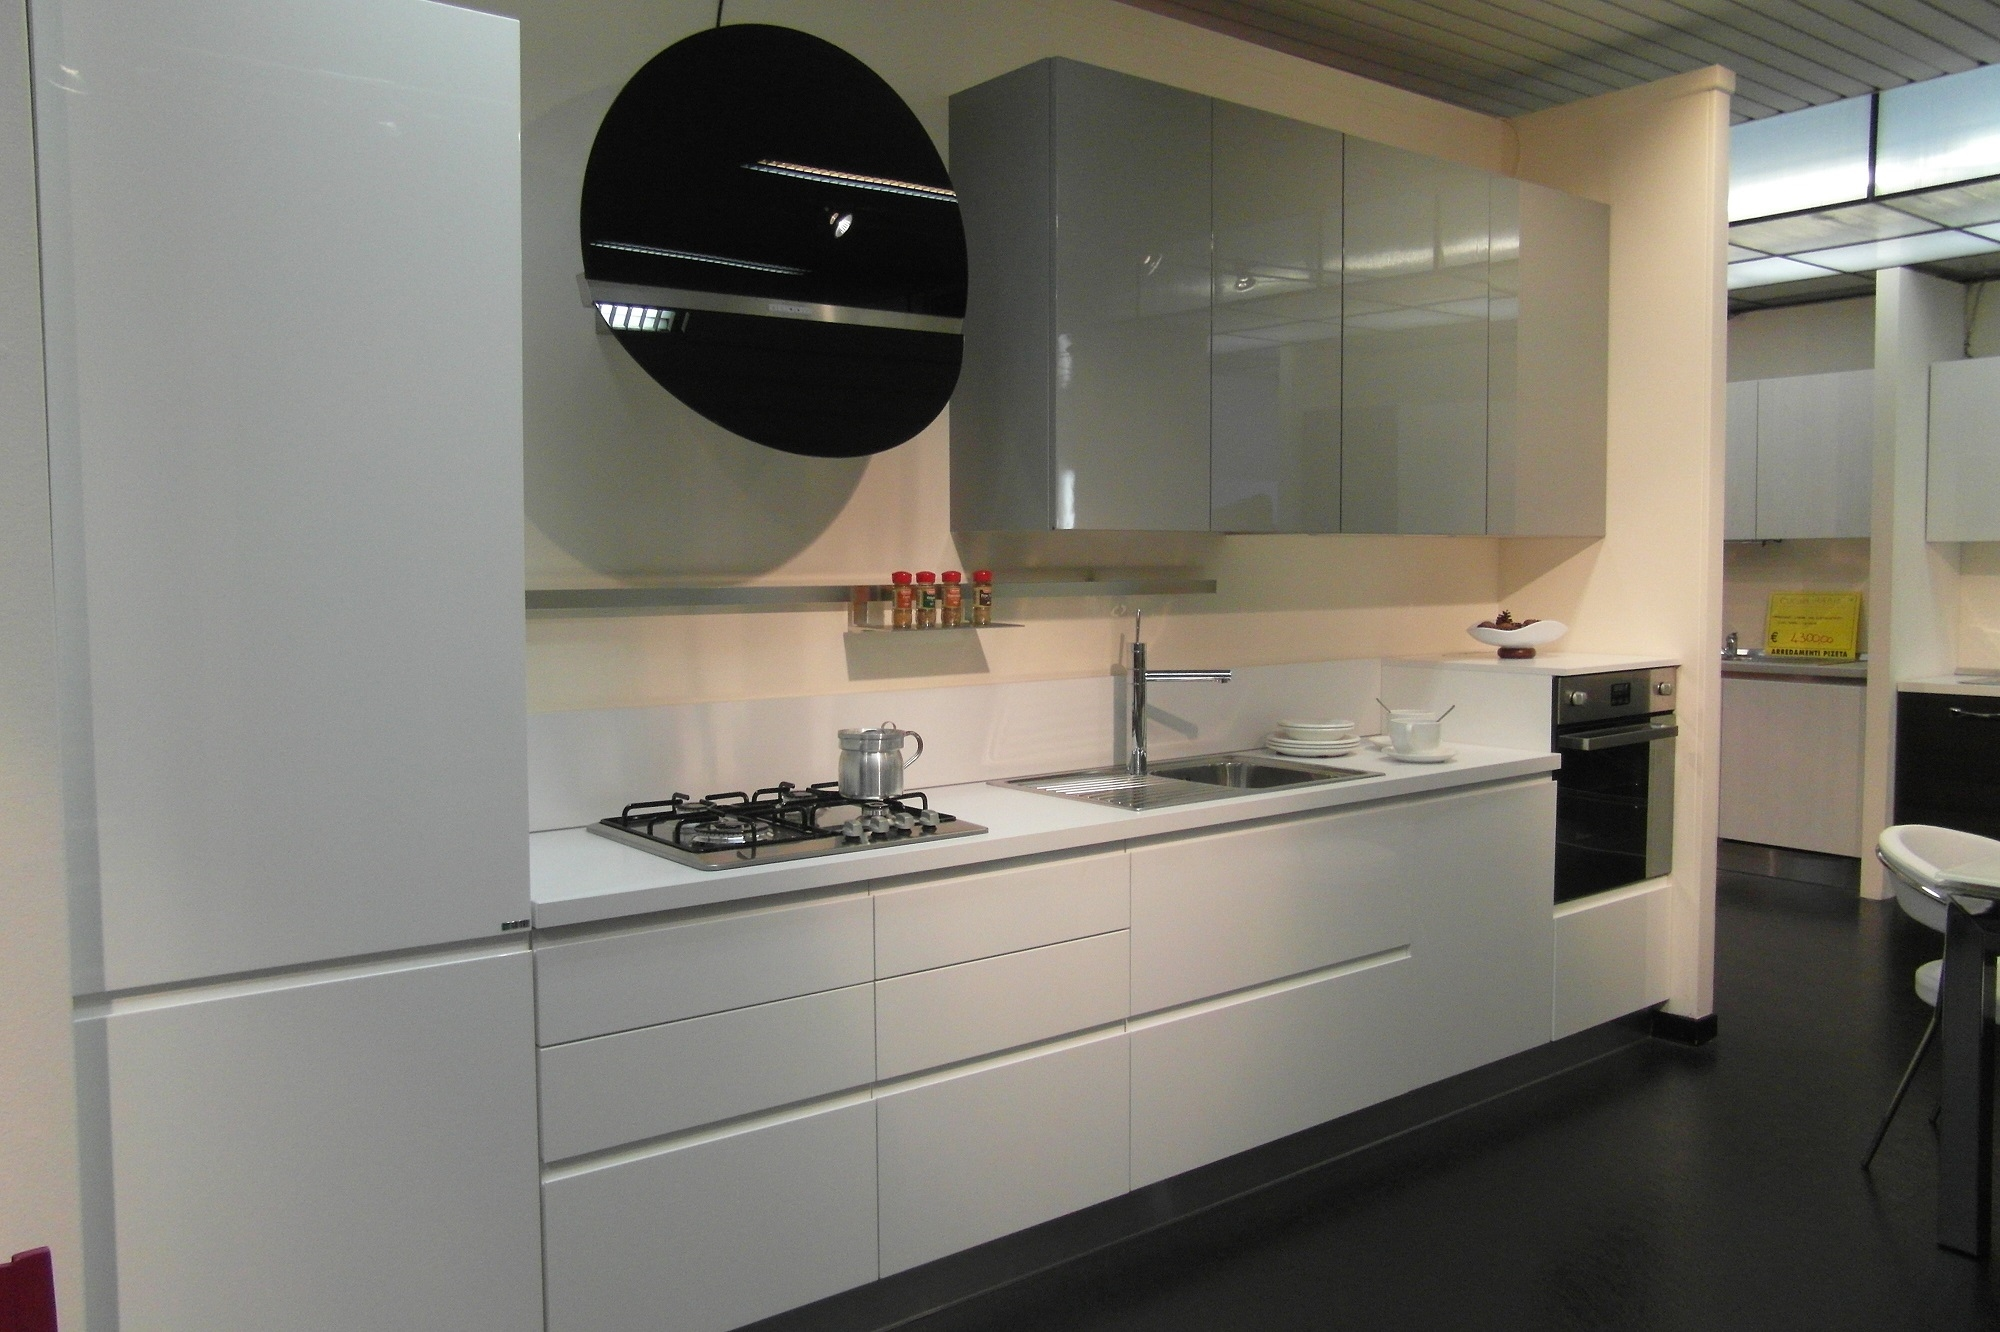 Awesome cucine bianche lucide gallery home ideas - Cucine nere lucide ...